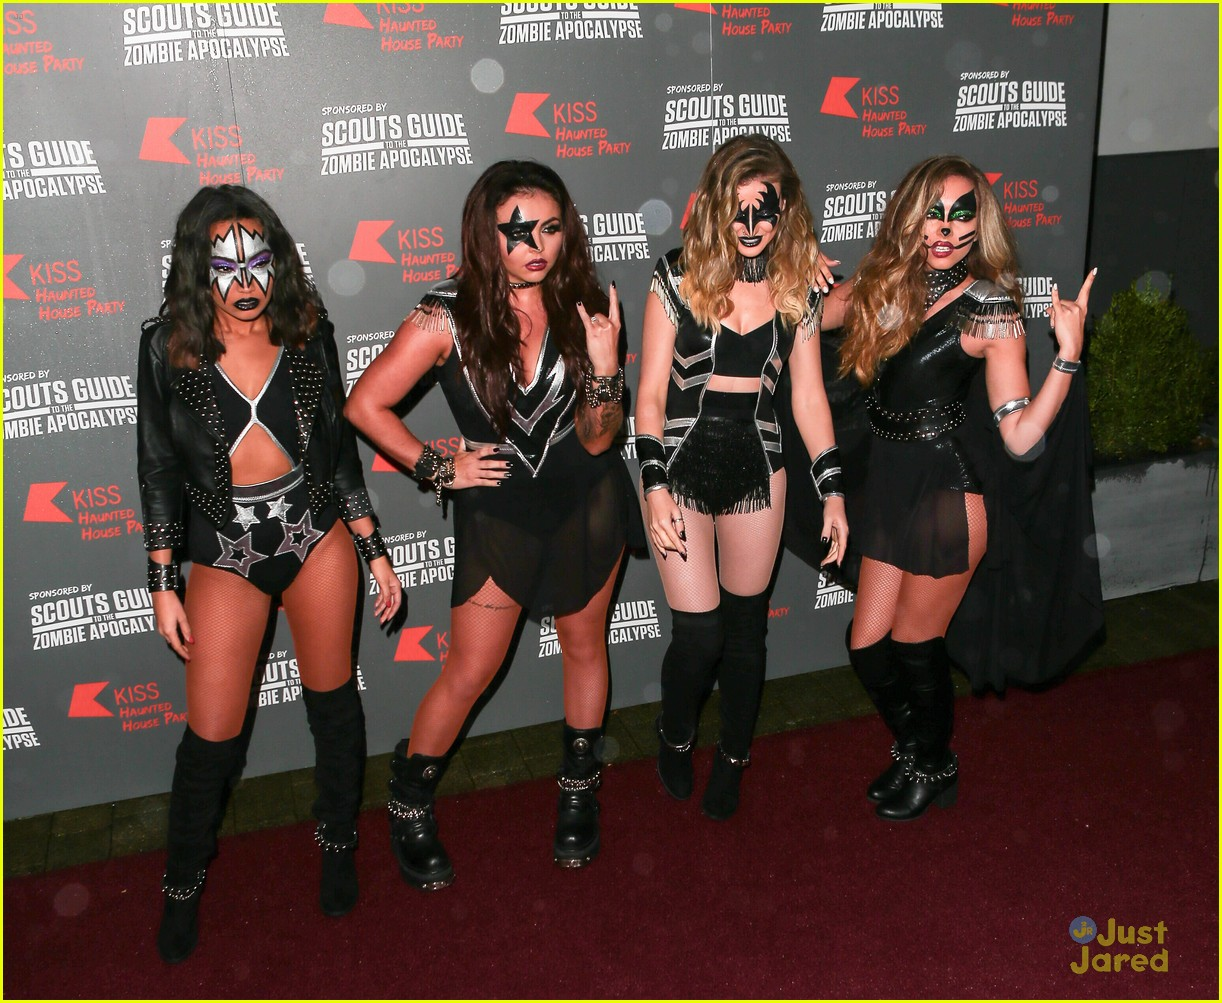 Little Mix Dress Up As Kiss For KISS FM's Haunted House Party ...